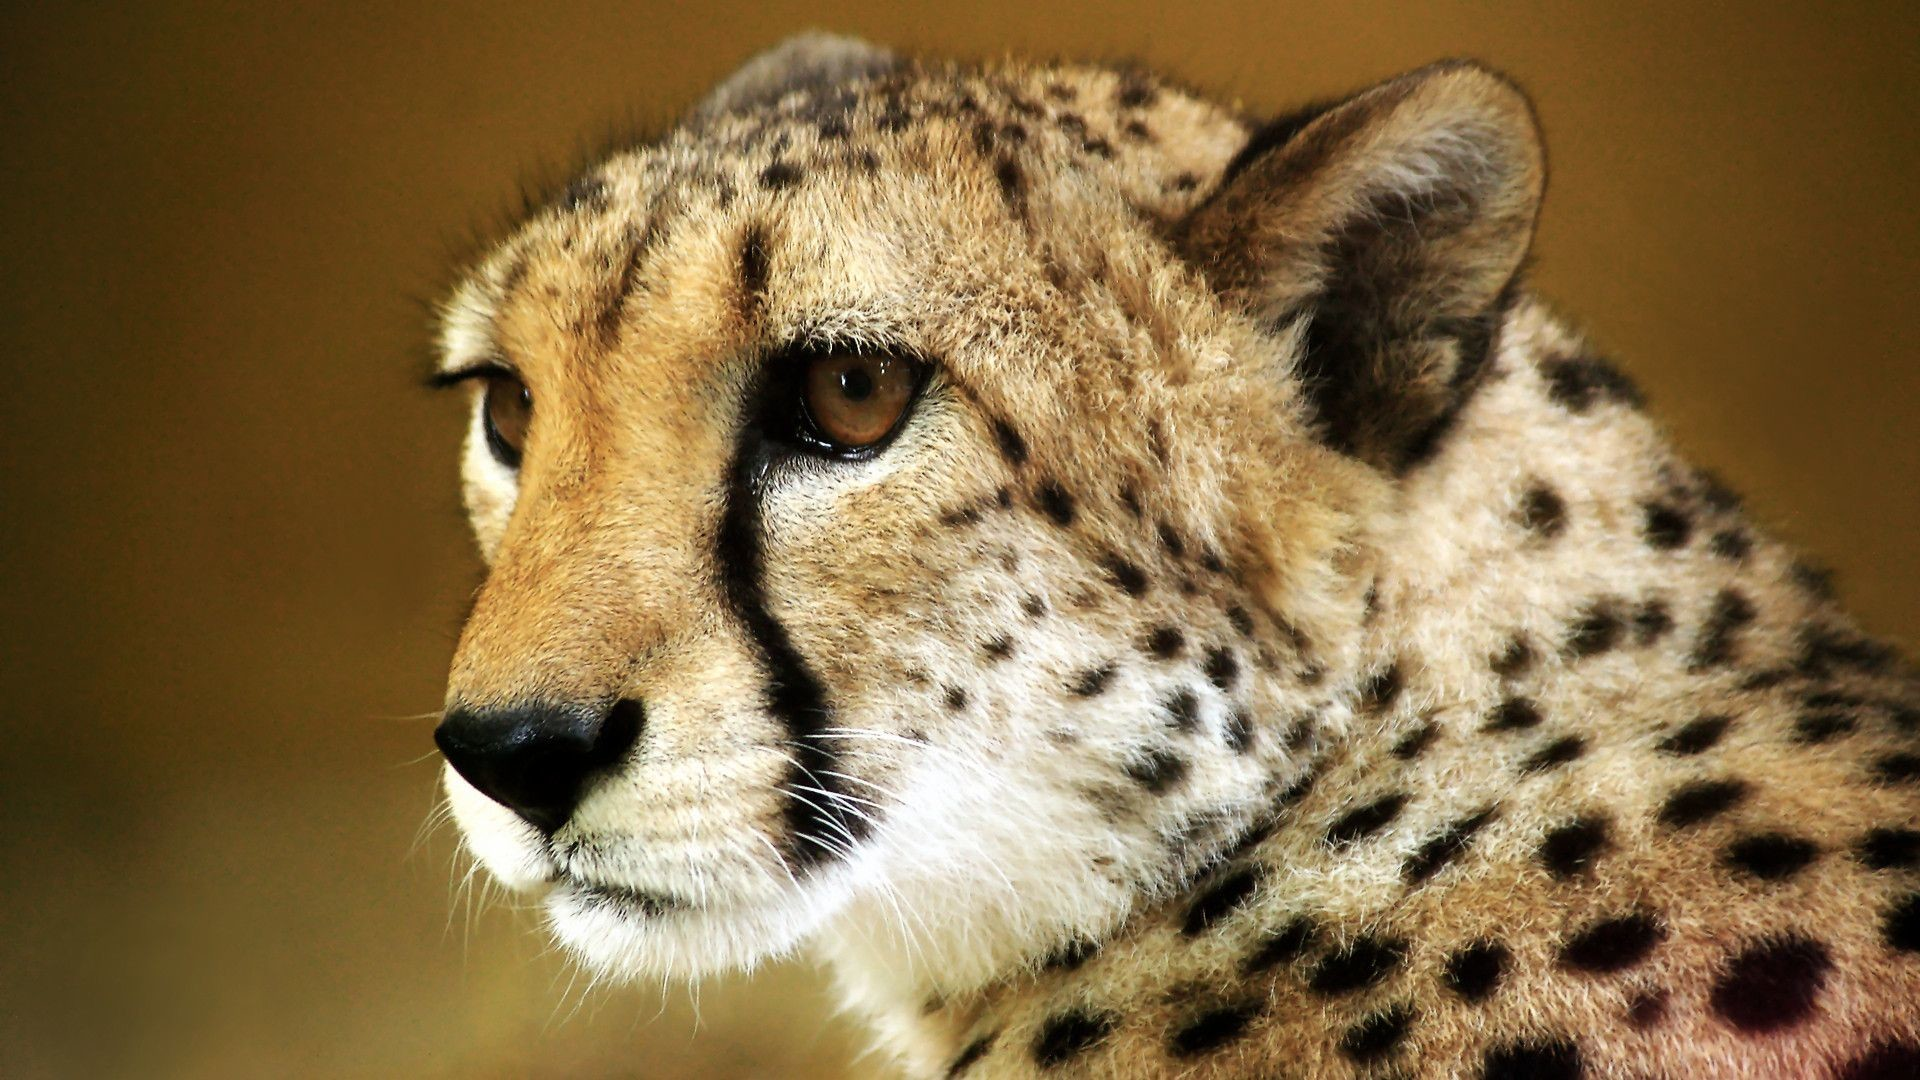 Res: 1920x1080, Baby Cheetah Wallpapers Group 1920×1080 Baby Cheetah Wallpapers (45  Wallpapers) | Adorable